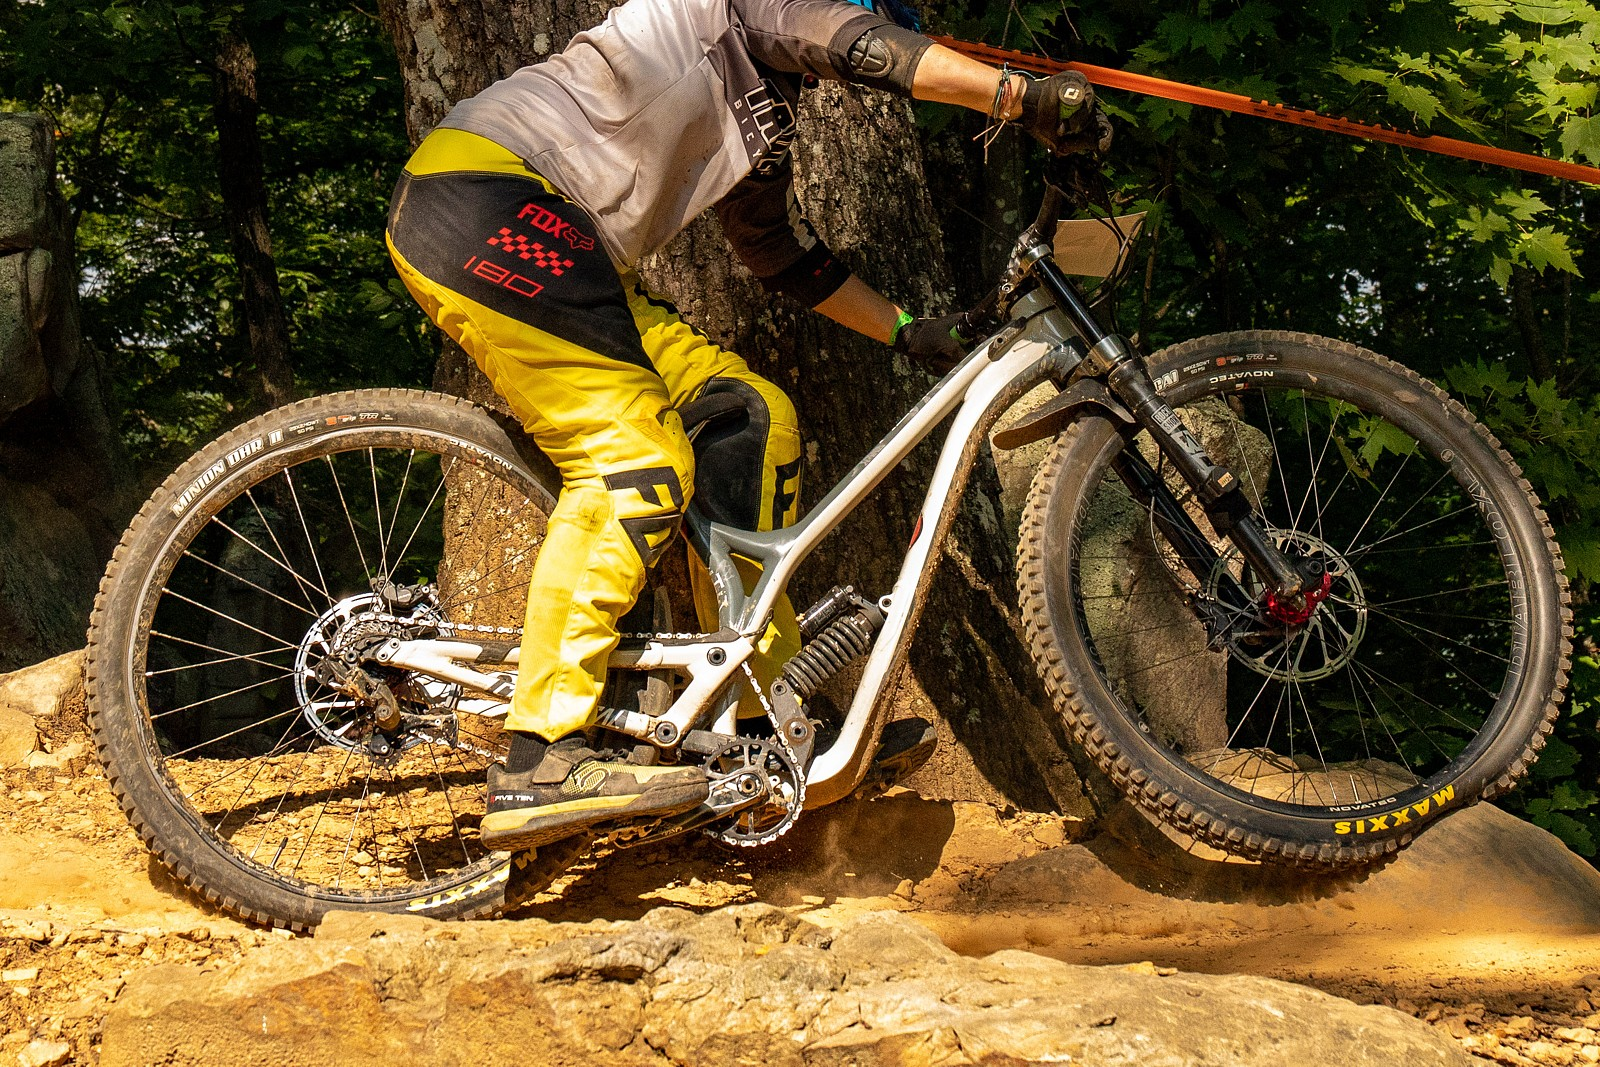 G-Out Project - Downhill Southeast Windrock - JackRice - Mountain Biking Pictures - Vital MTB